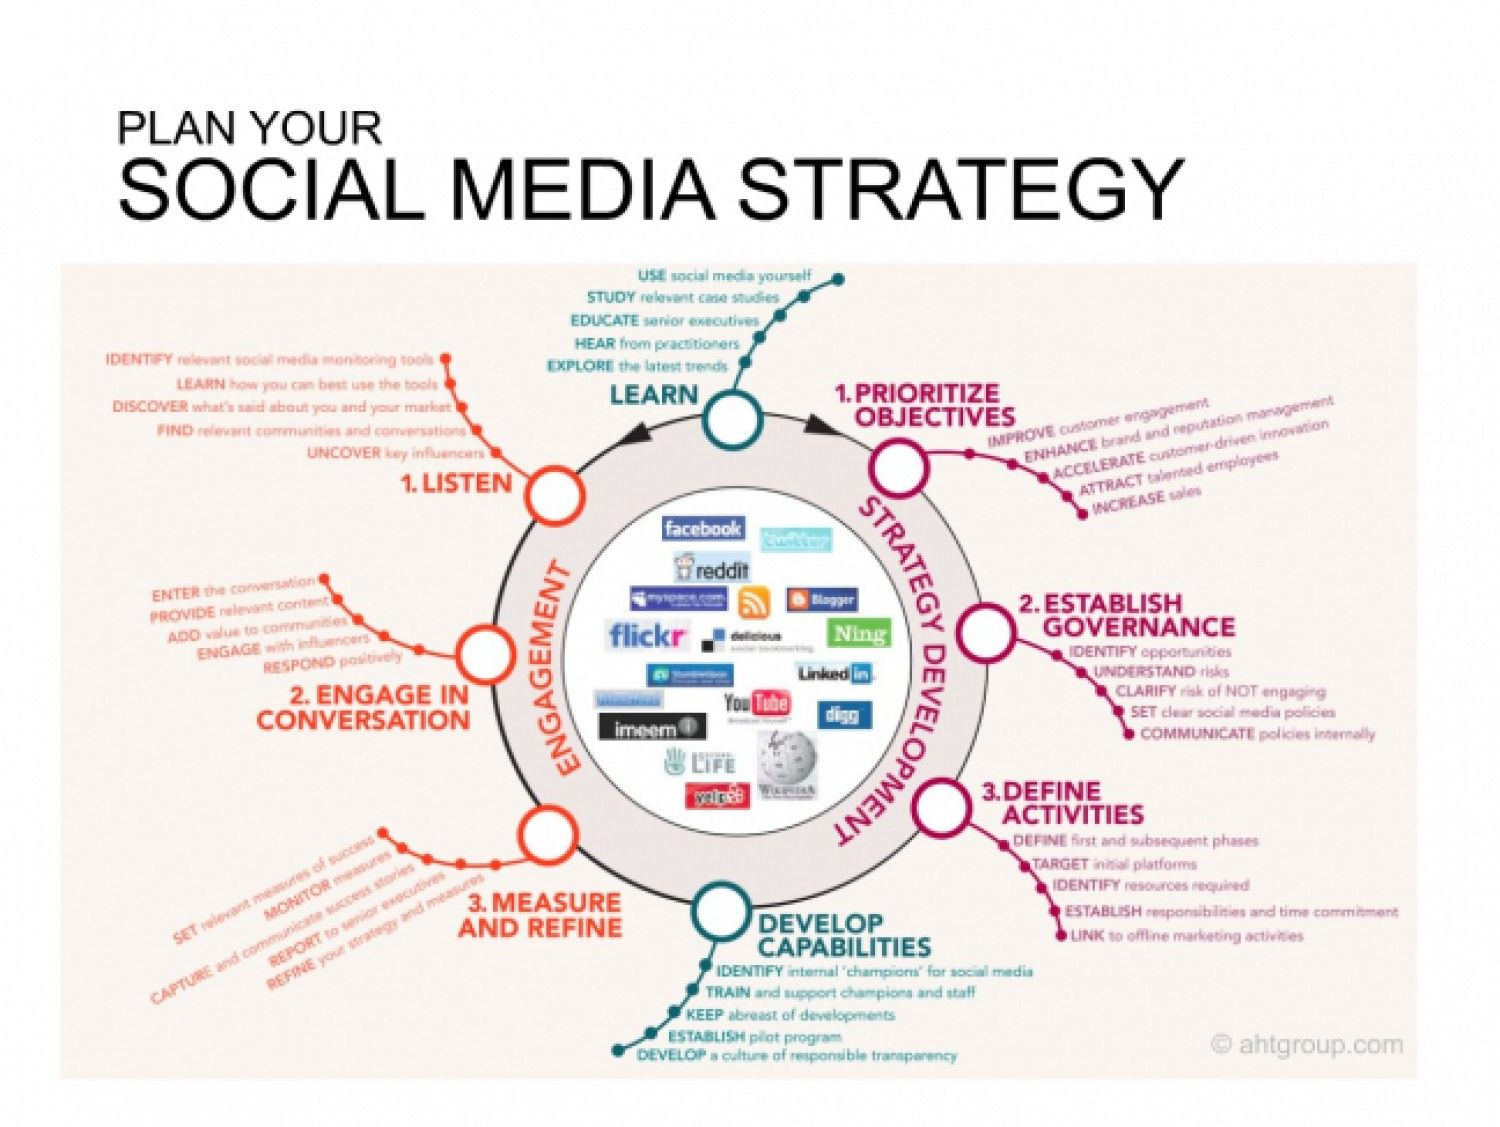 Social Media Strategy Social Media Infographic Social Media Marketing Plan Social Media Planning